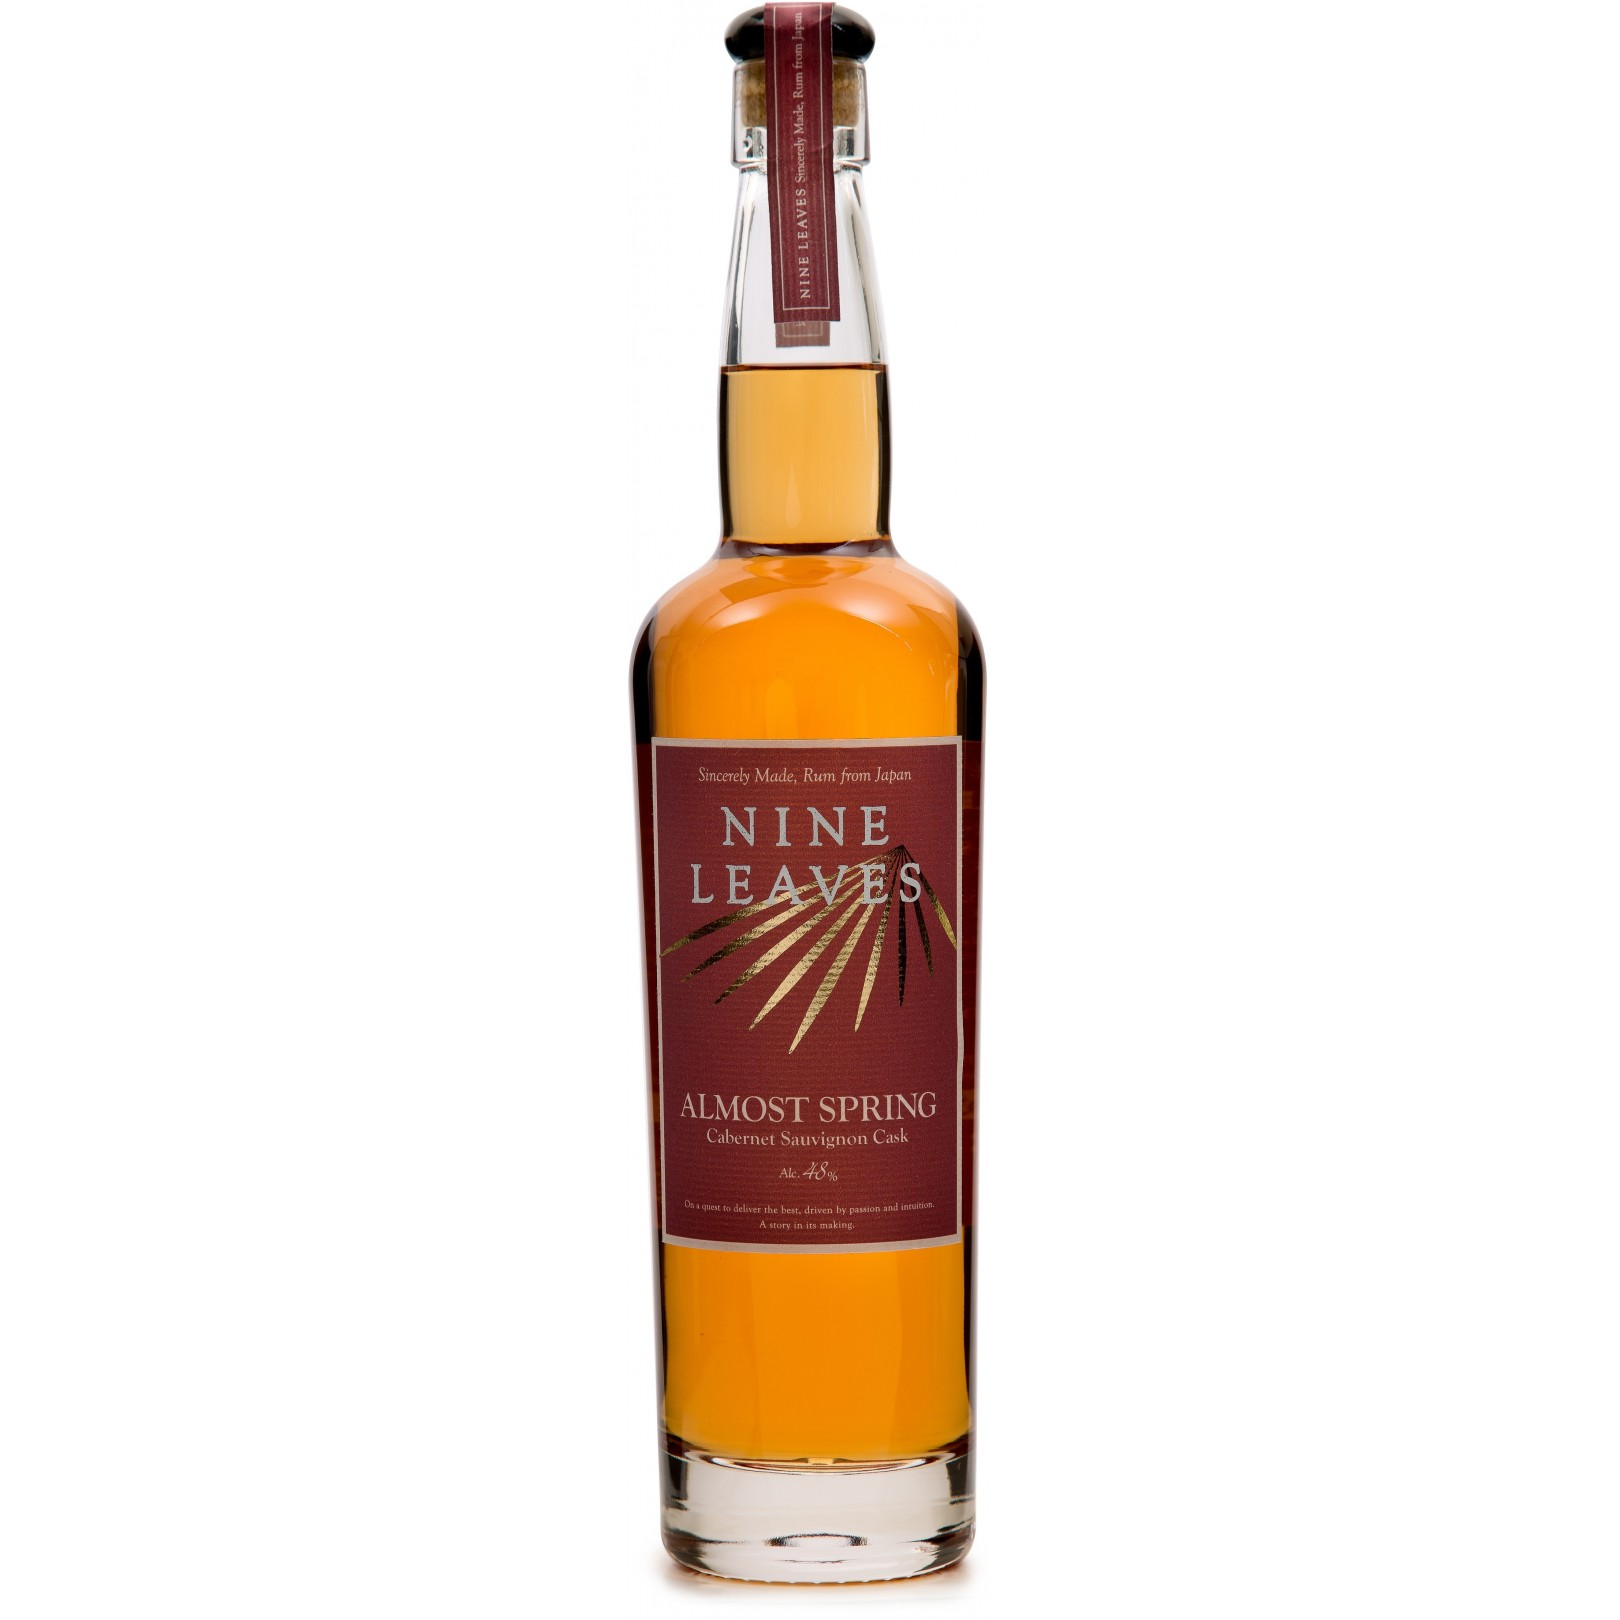 NINE LEAVES - Almost Spring Cabernet Sauvignon Cask, rhum vieux 70cl 48° - Japon